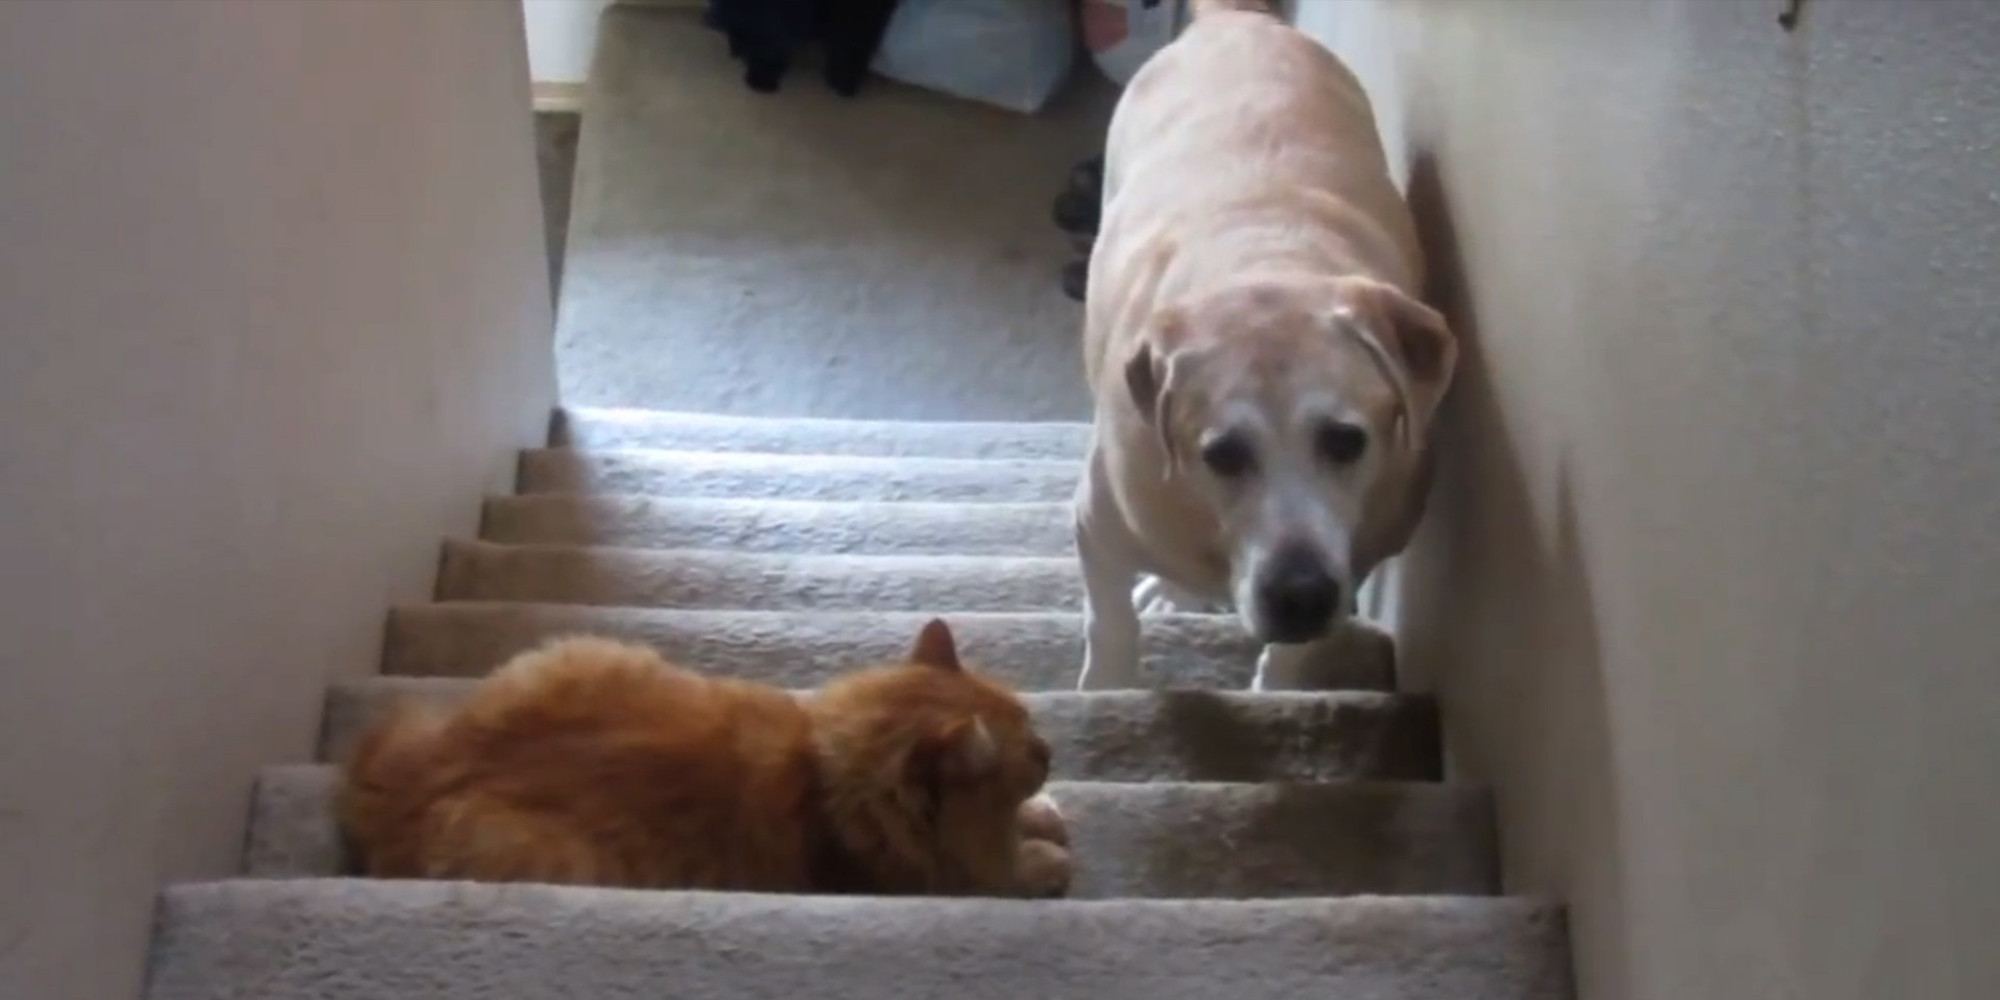 Dog Scared Of Cat On Stairs